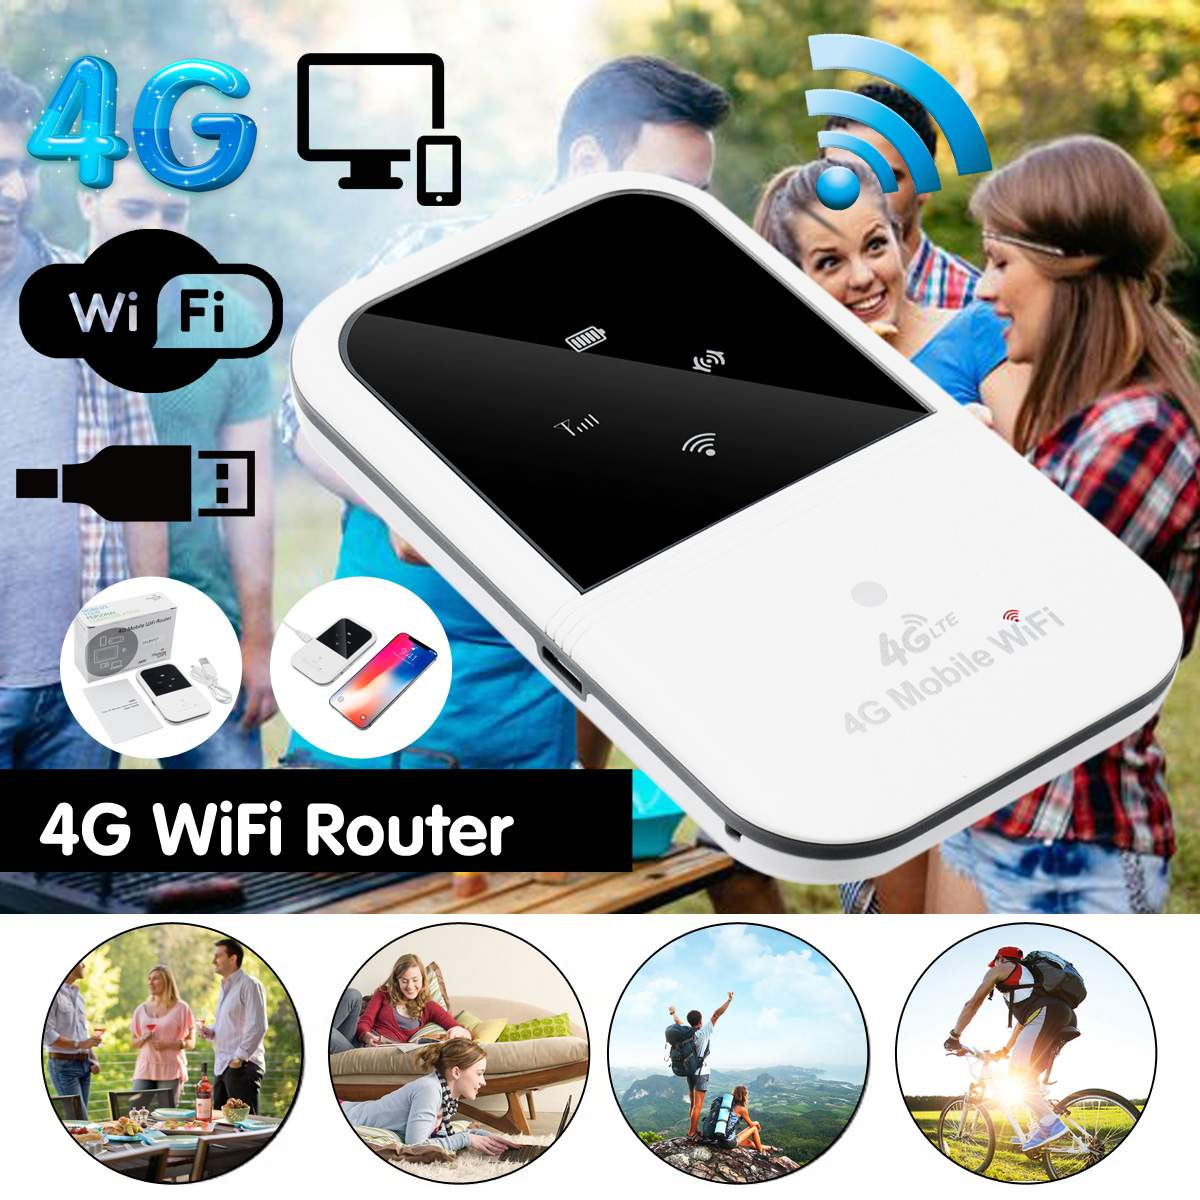 4G Hotspot Routers Repeater Sim-Slot Portable Wifi Wireless 150mbps with G/n